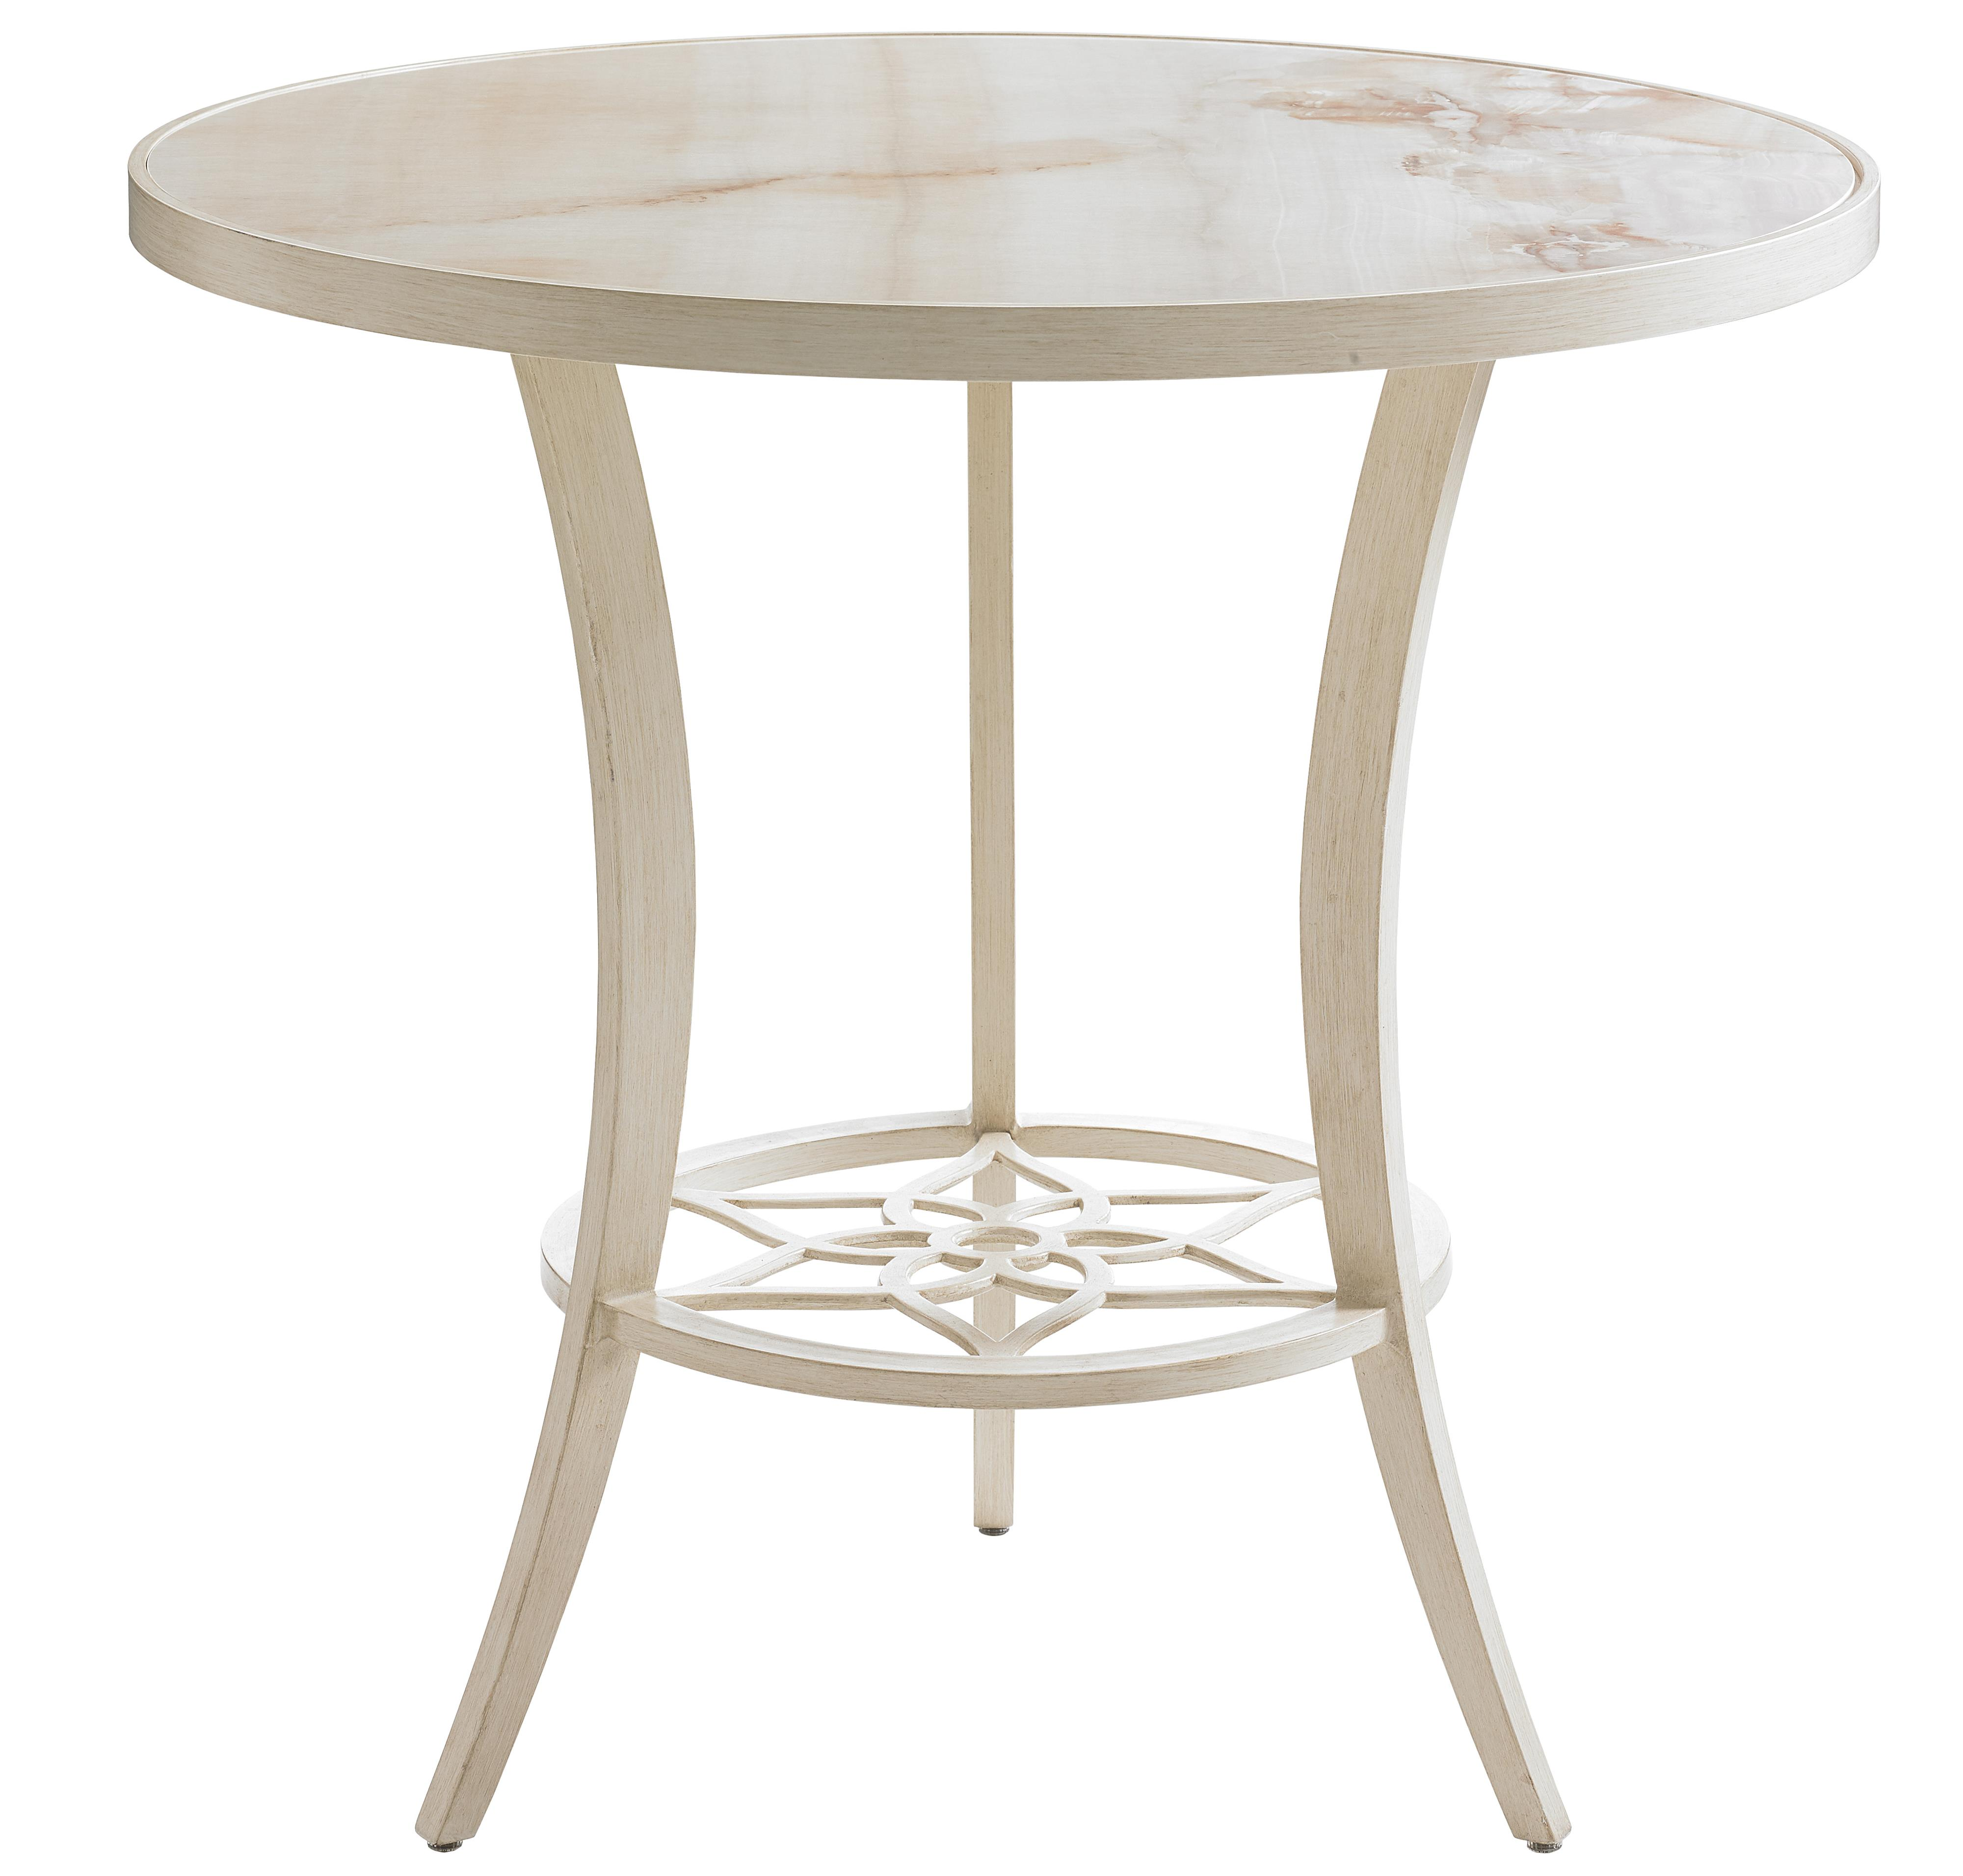 Misty Garden High/Low Bistro Table by Tommy Bahama Outdoor Living at Baer's Furniture